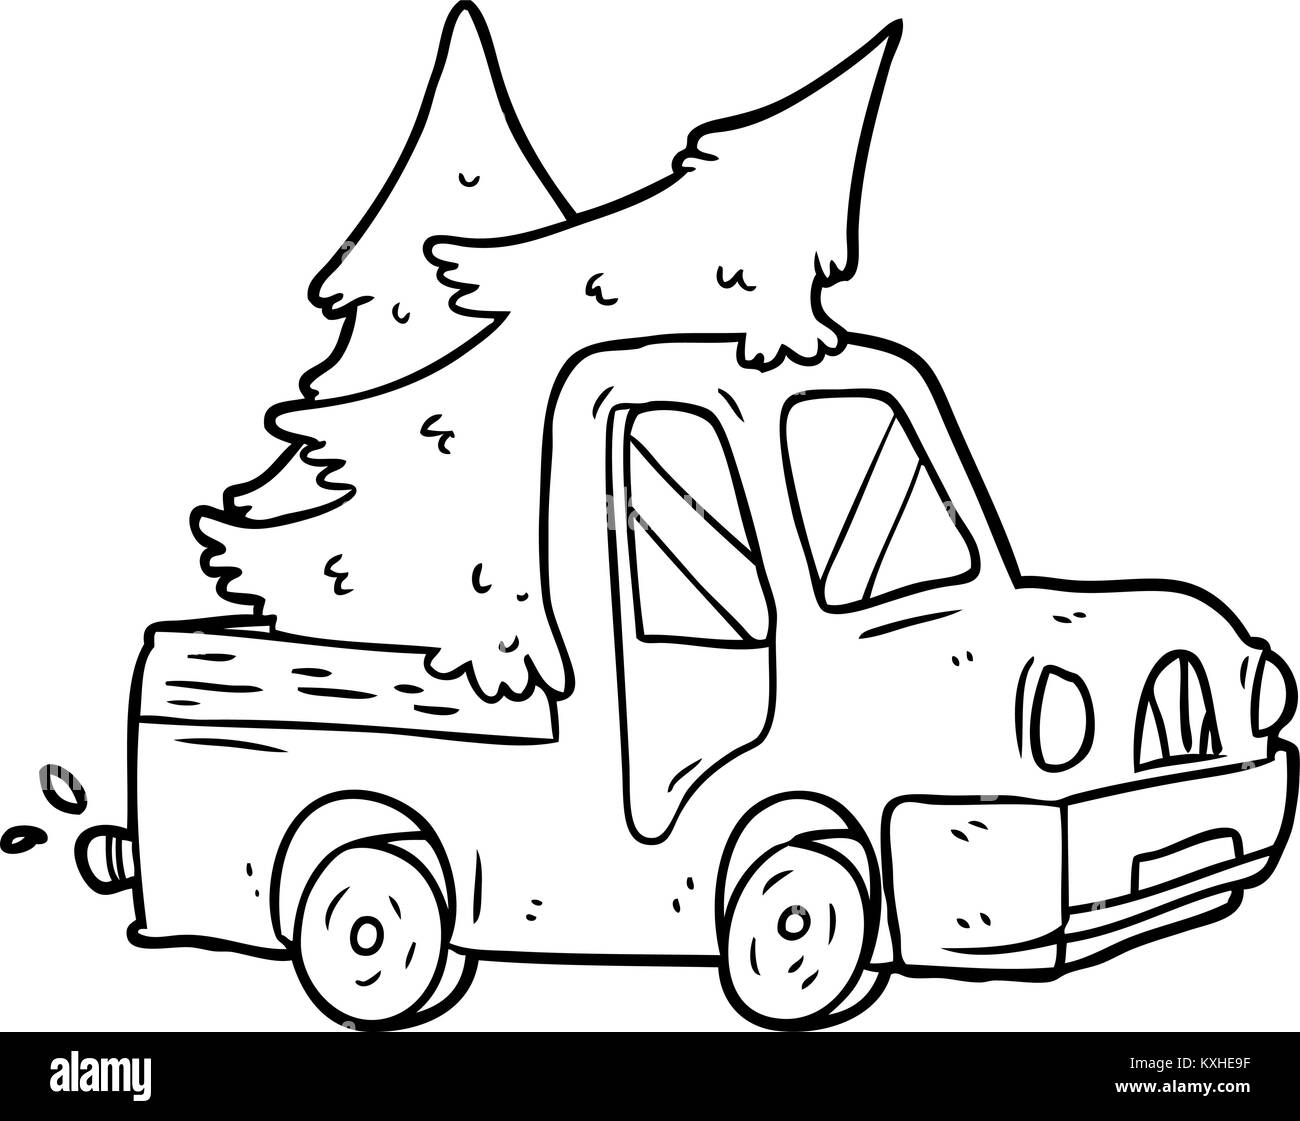 Line Drawing Of A Pickup Truck Carrying Christmas Trees Stock Vector Image Art Alamy